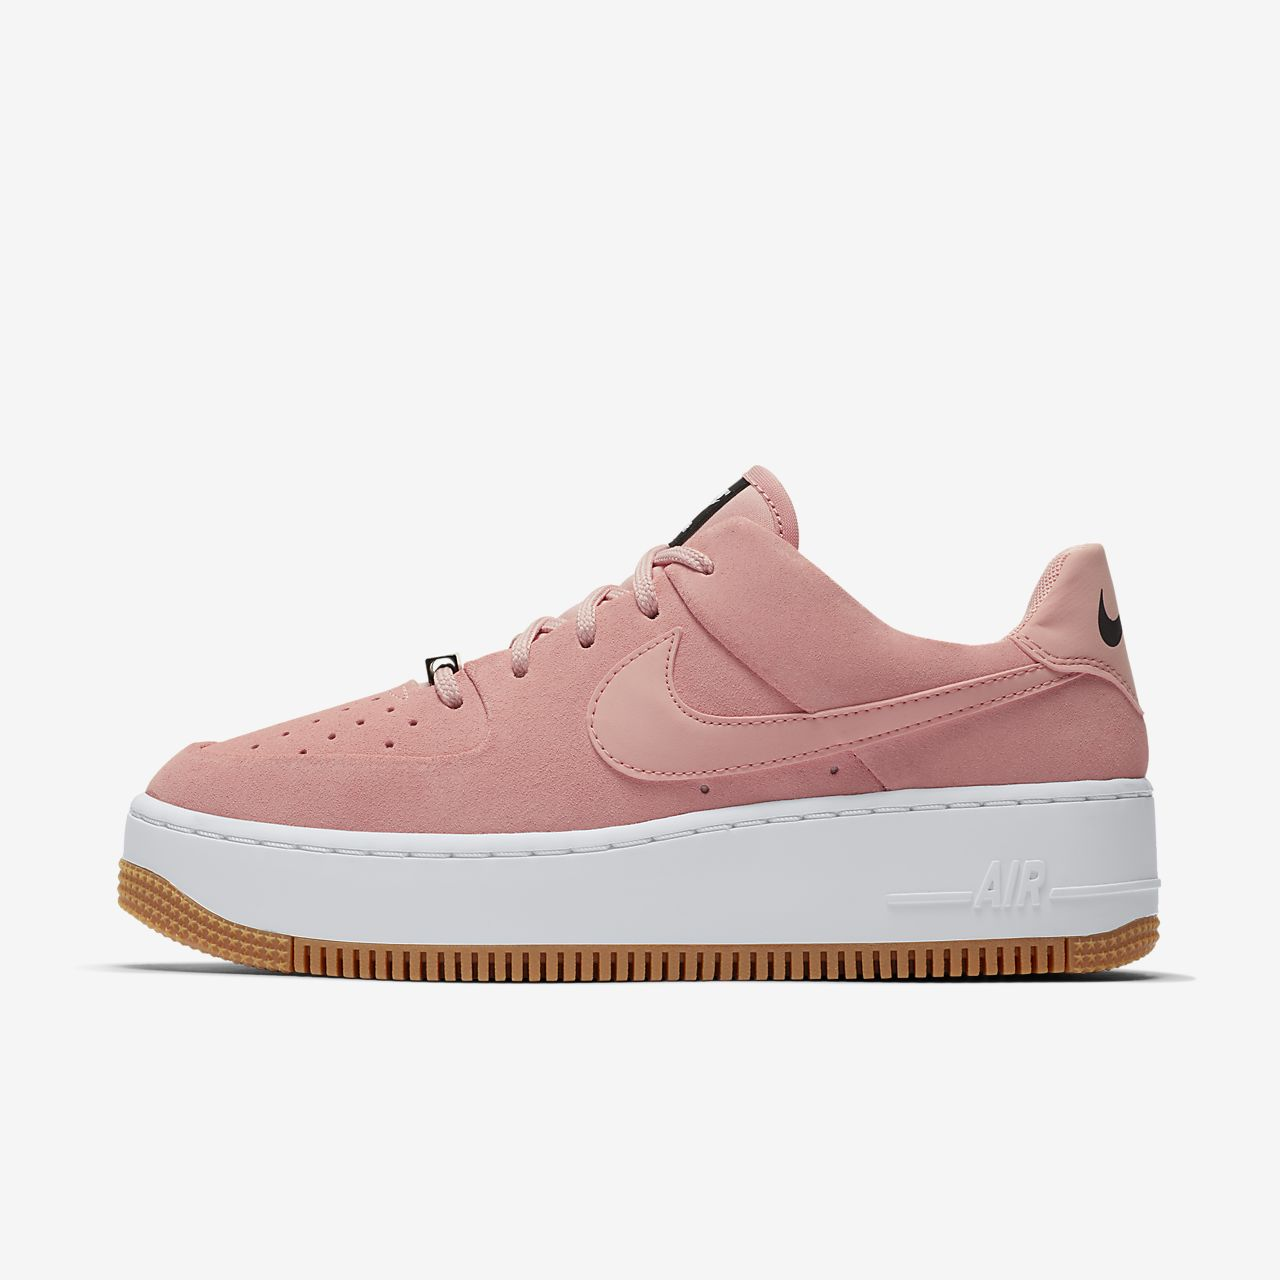 Nike Air Force 1 Rosas Pastel Zapatos Deportivos en